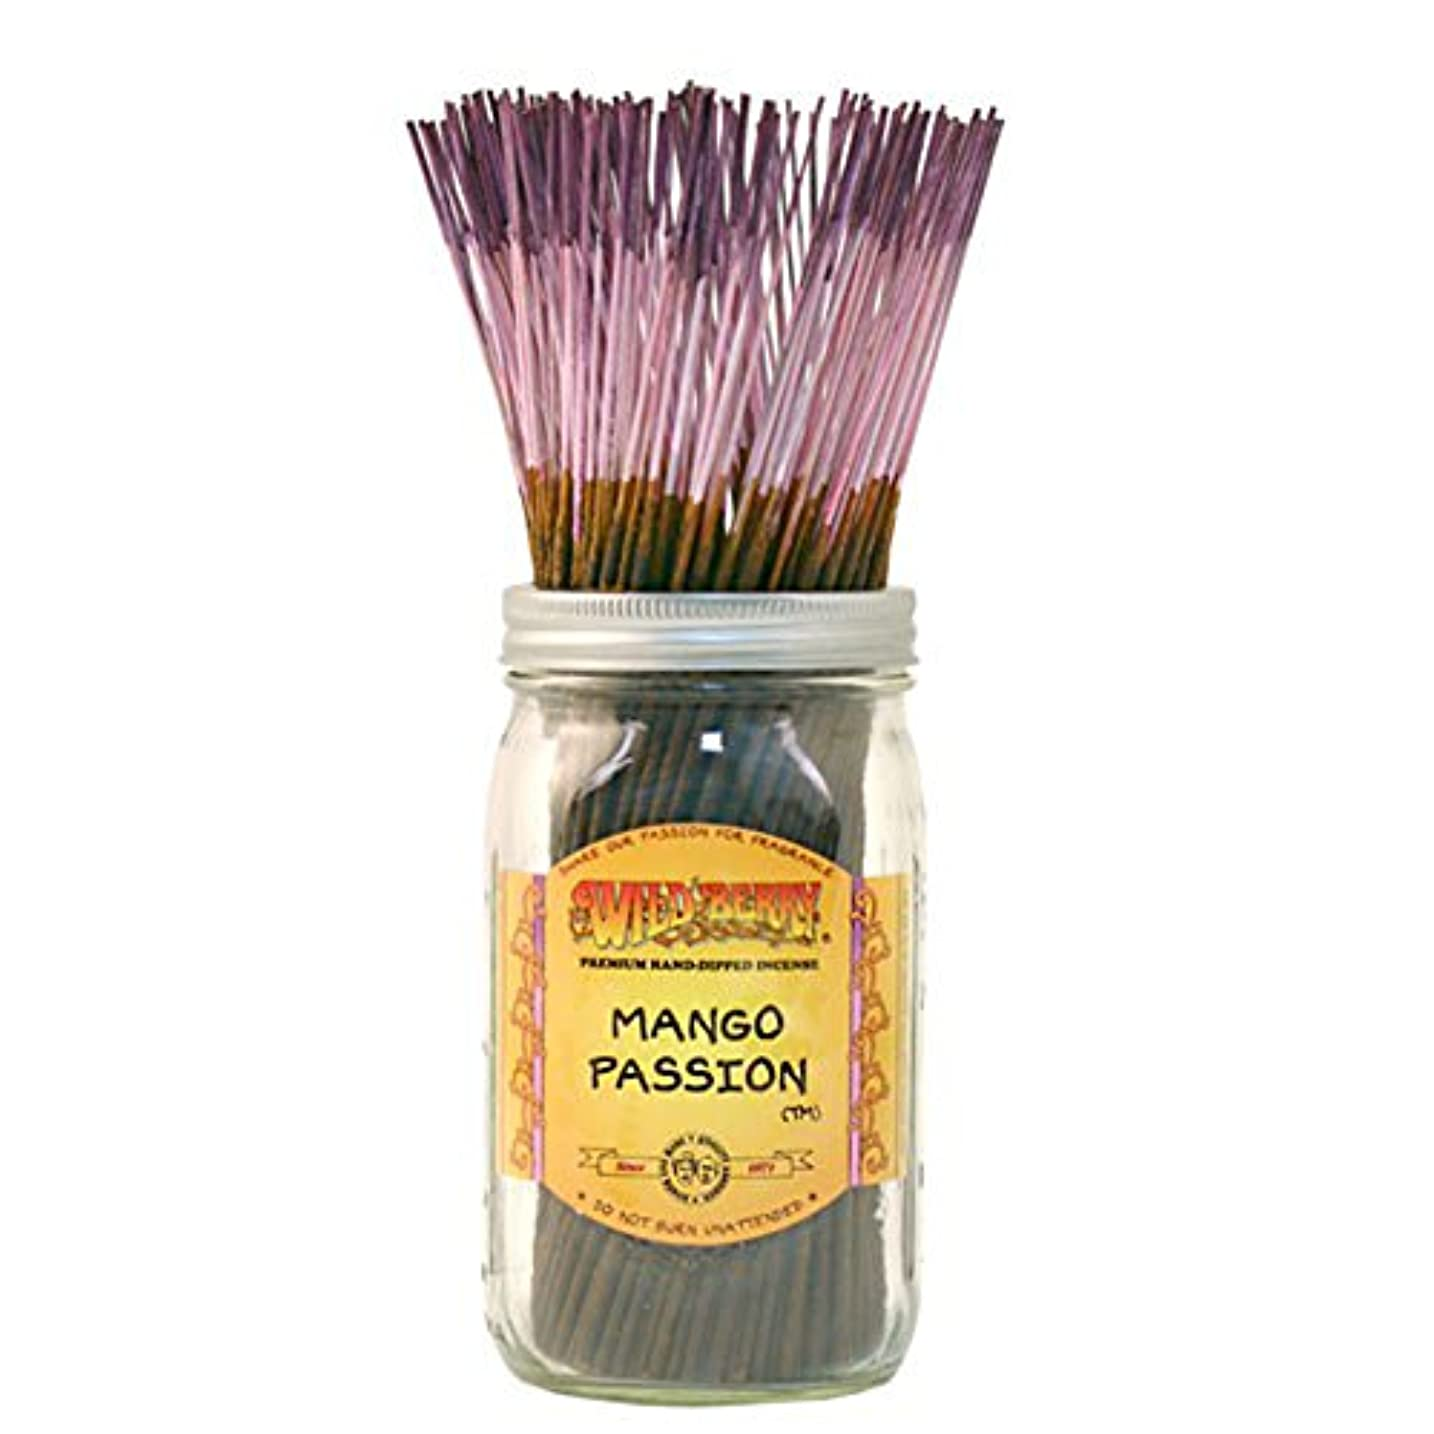 雑品吸うオートWild Berry Mango Passion, Highly Fragranced Incense Sticksバルクパック、100ピース、11インチ